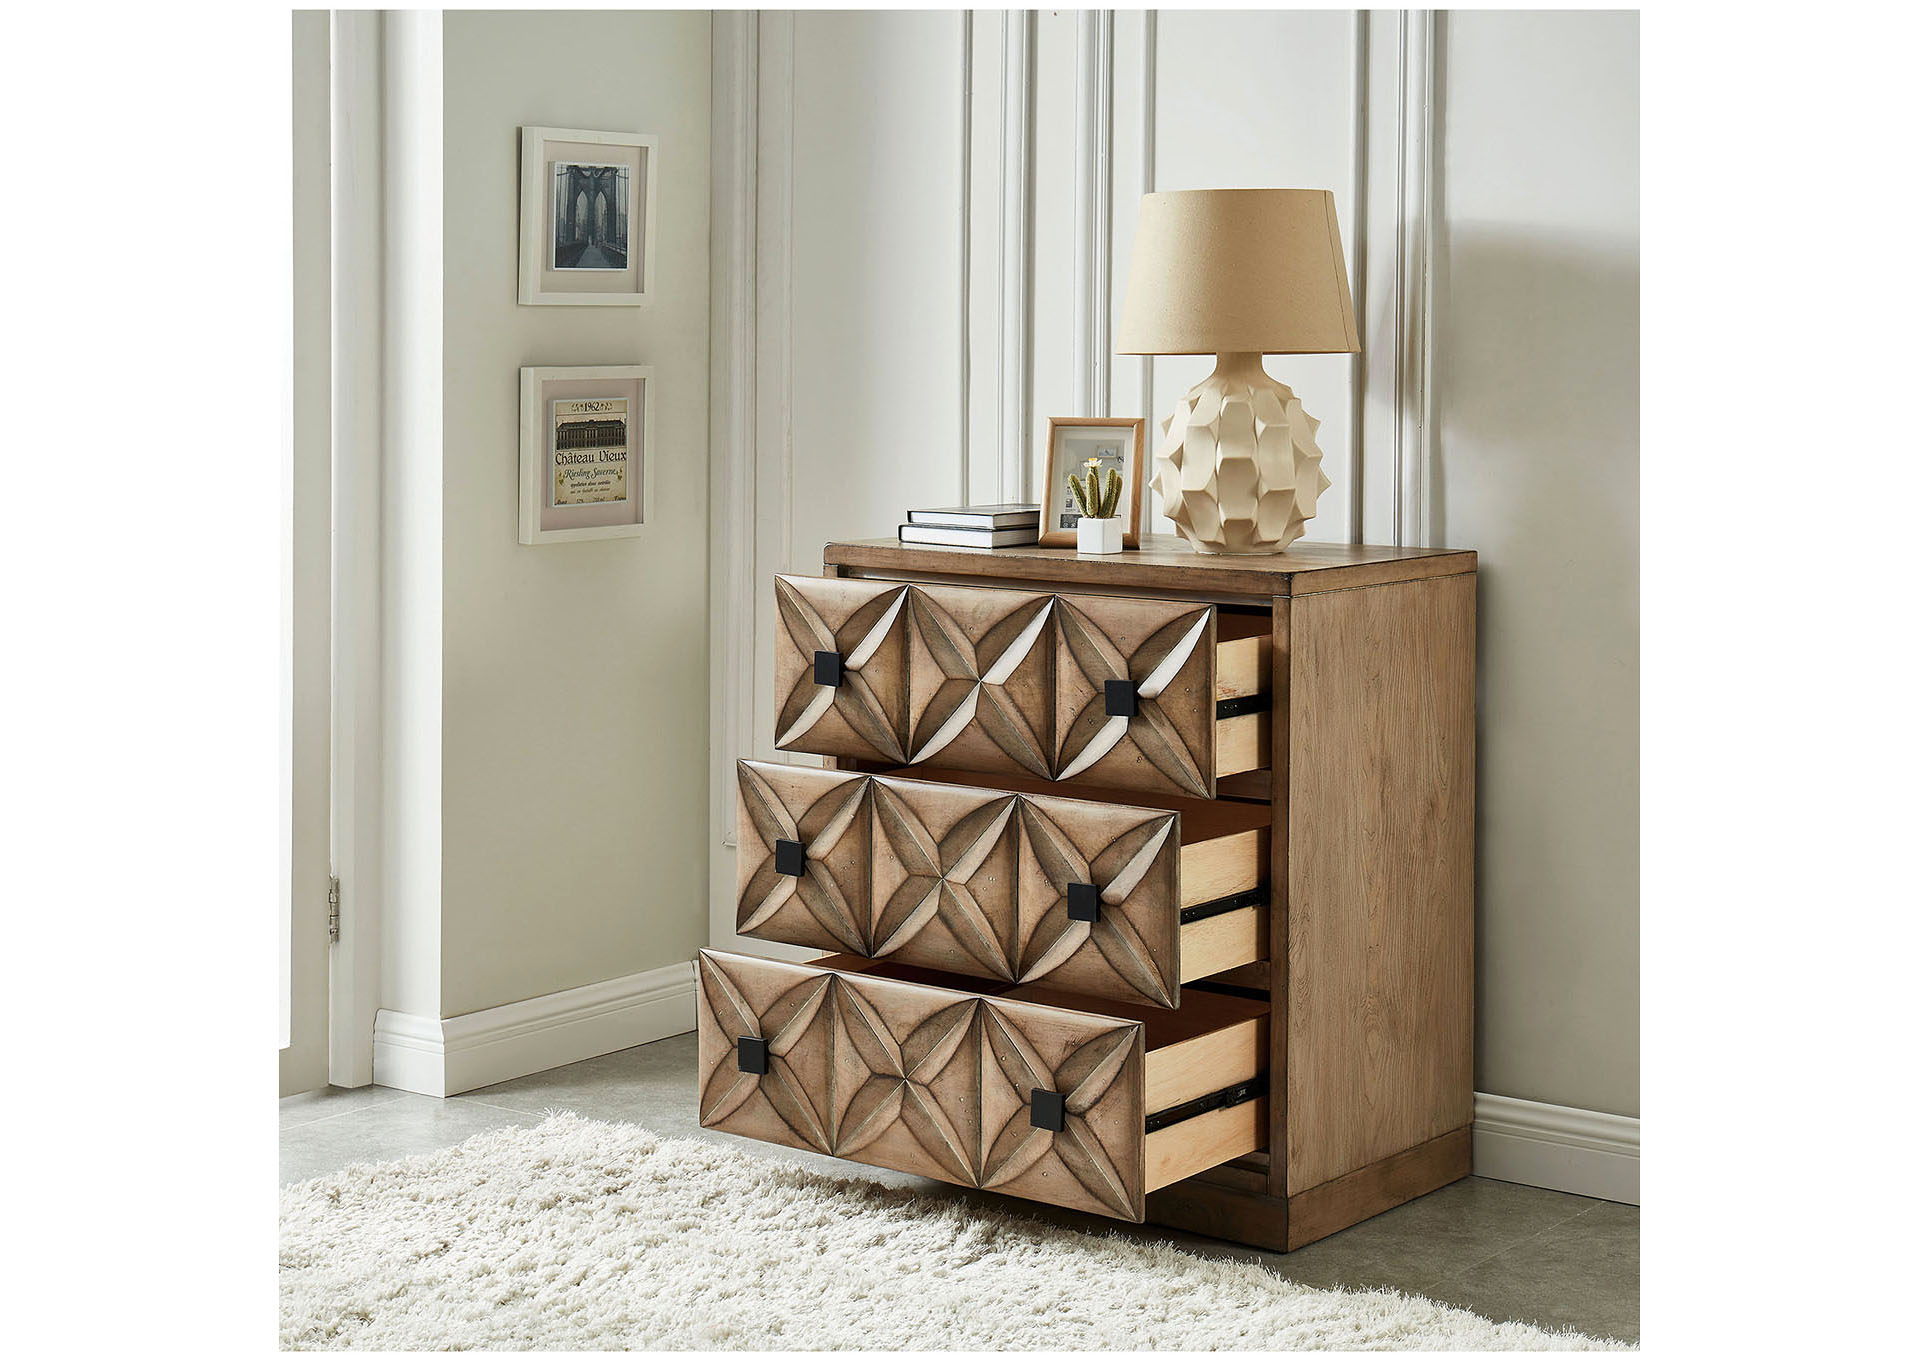 Markos Brown Hall Way Cabinet,Furniture of America